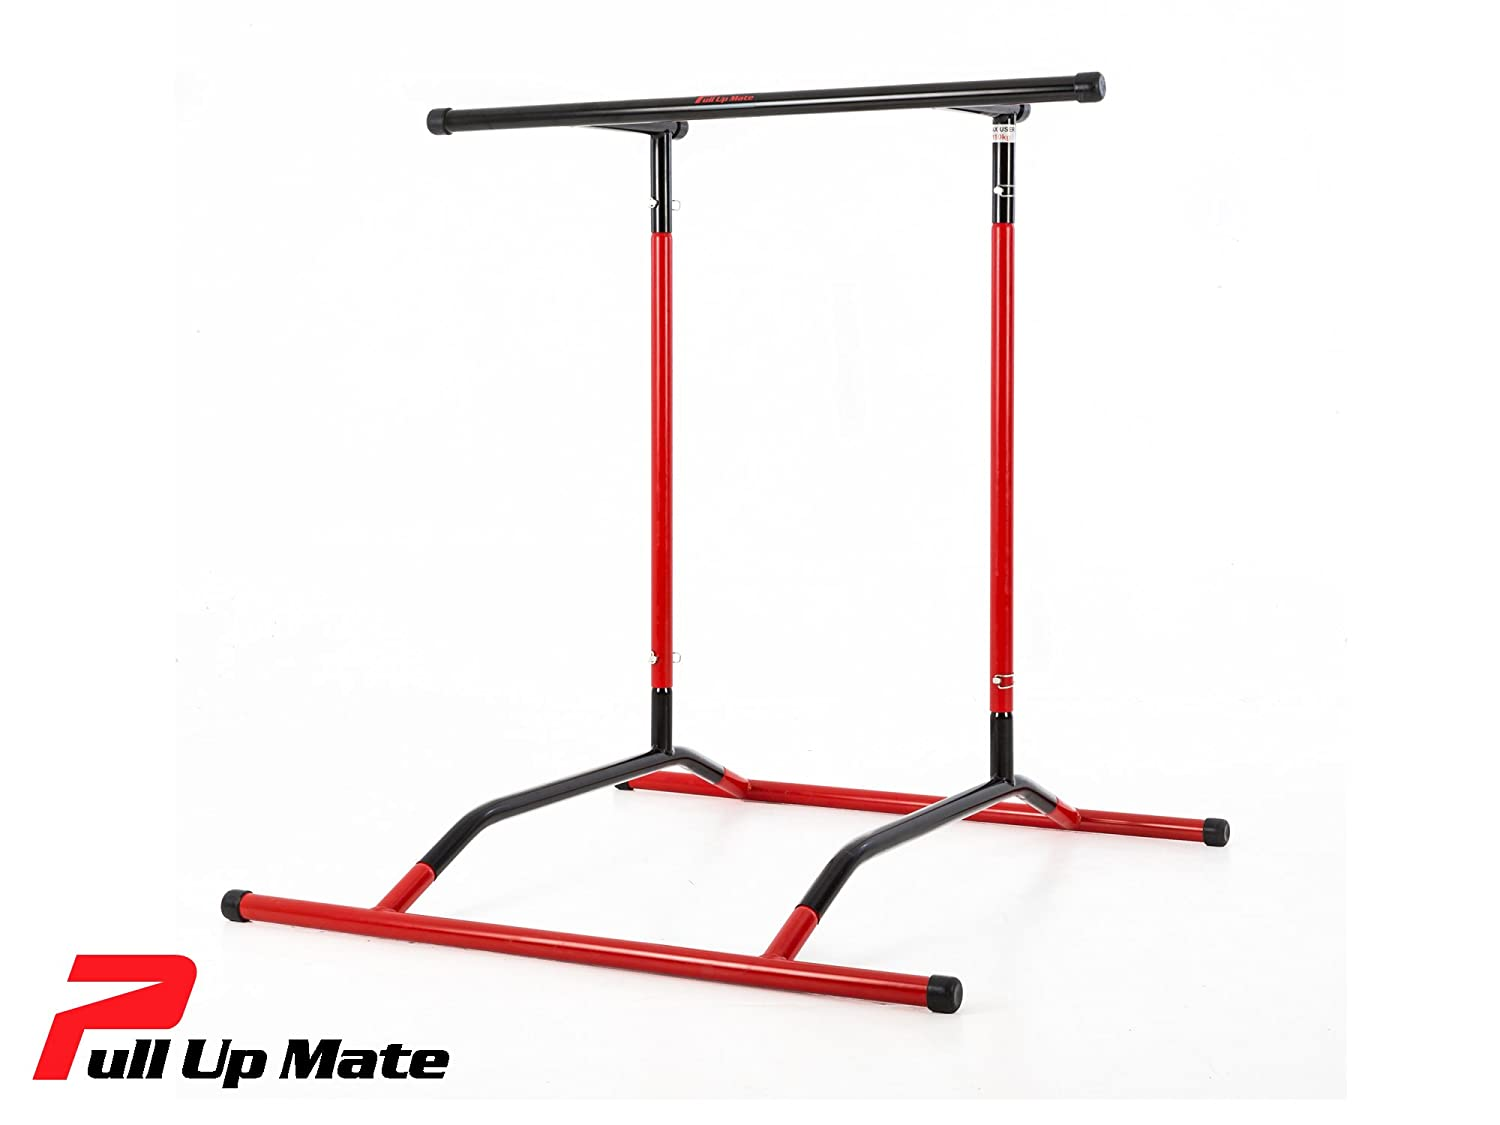 amazon com pull up mate no bag freestanding portable pull